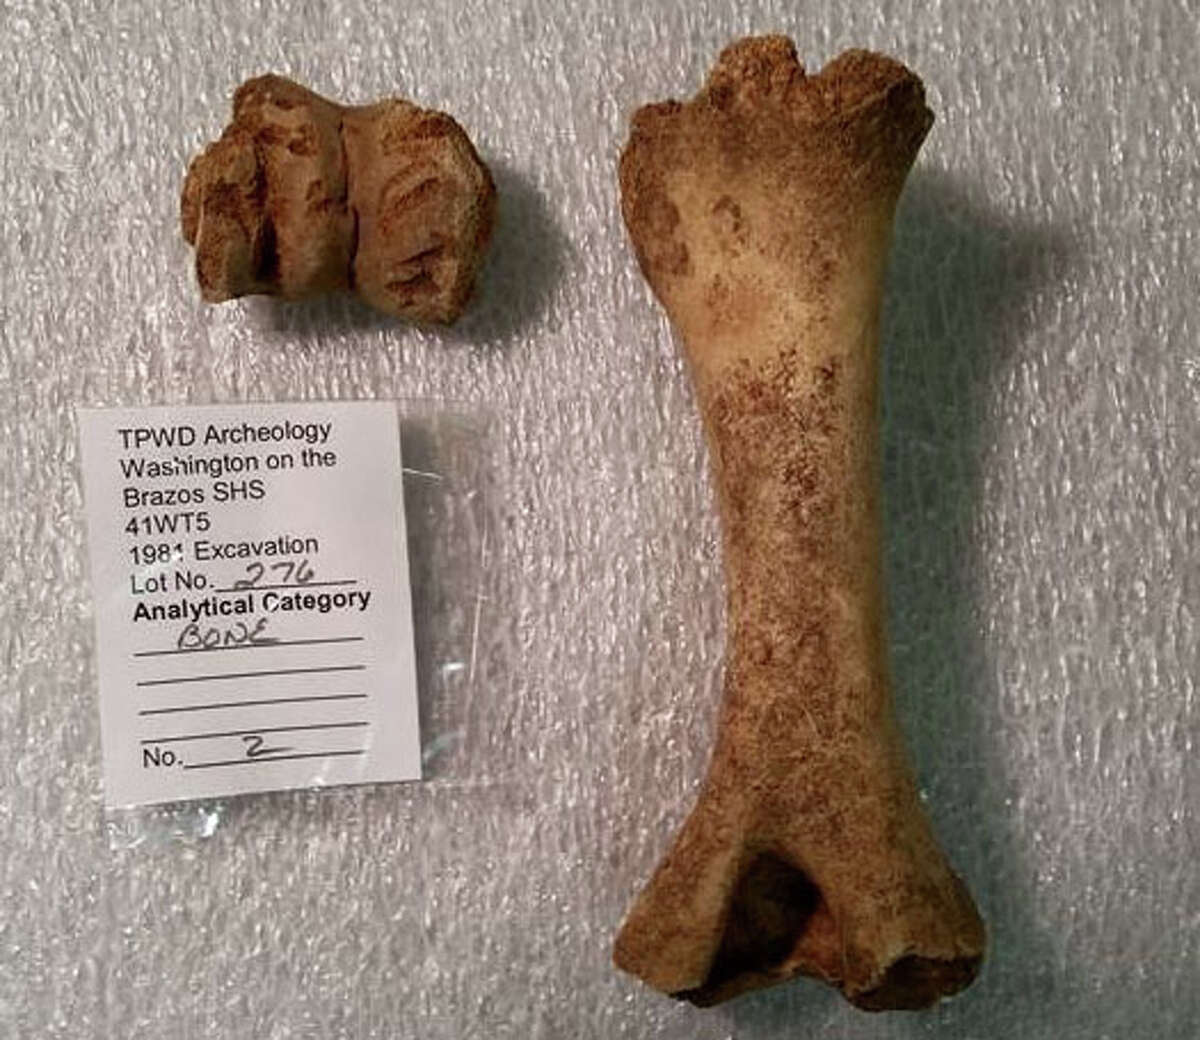 One Park Ranger believes this bone belonged to a pig, due to how stout it is.